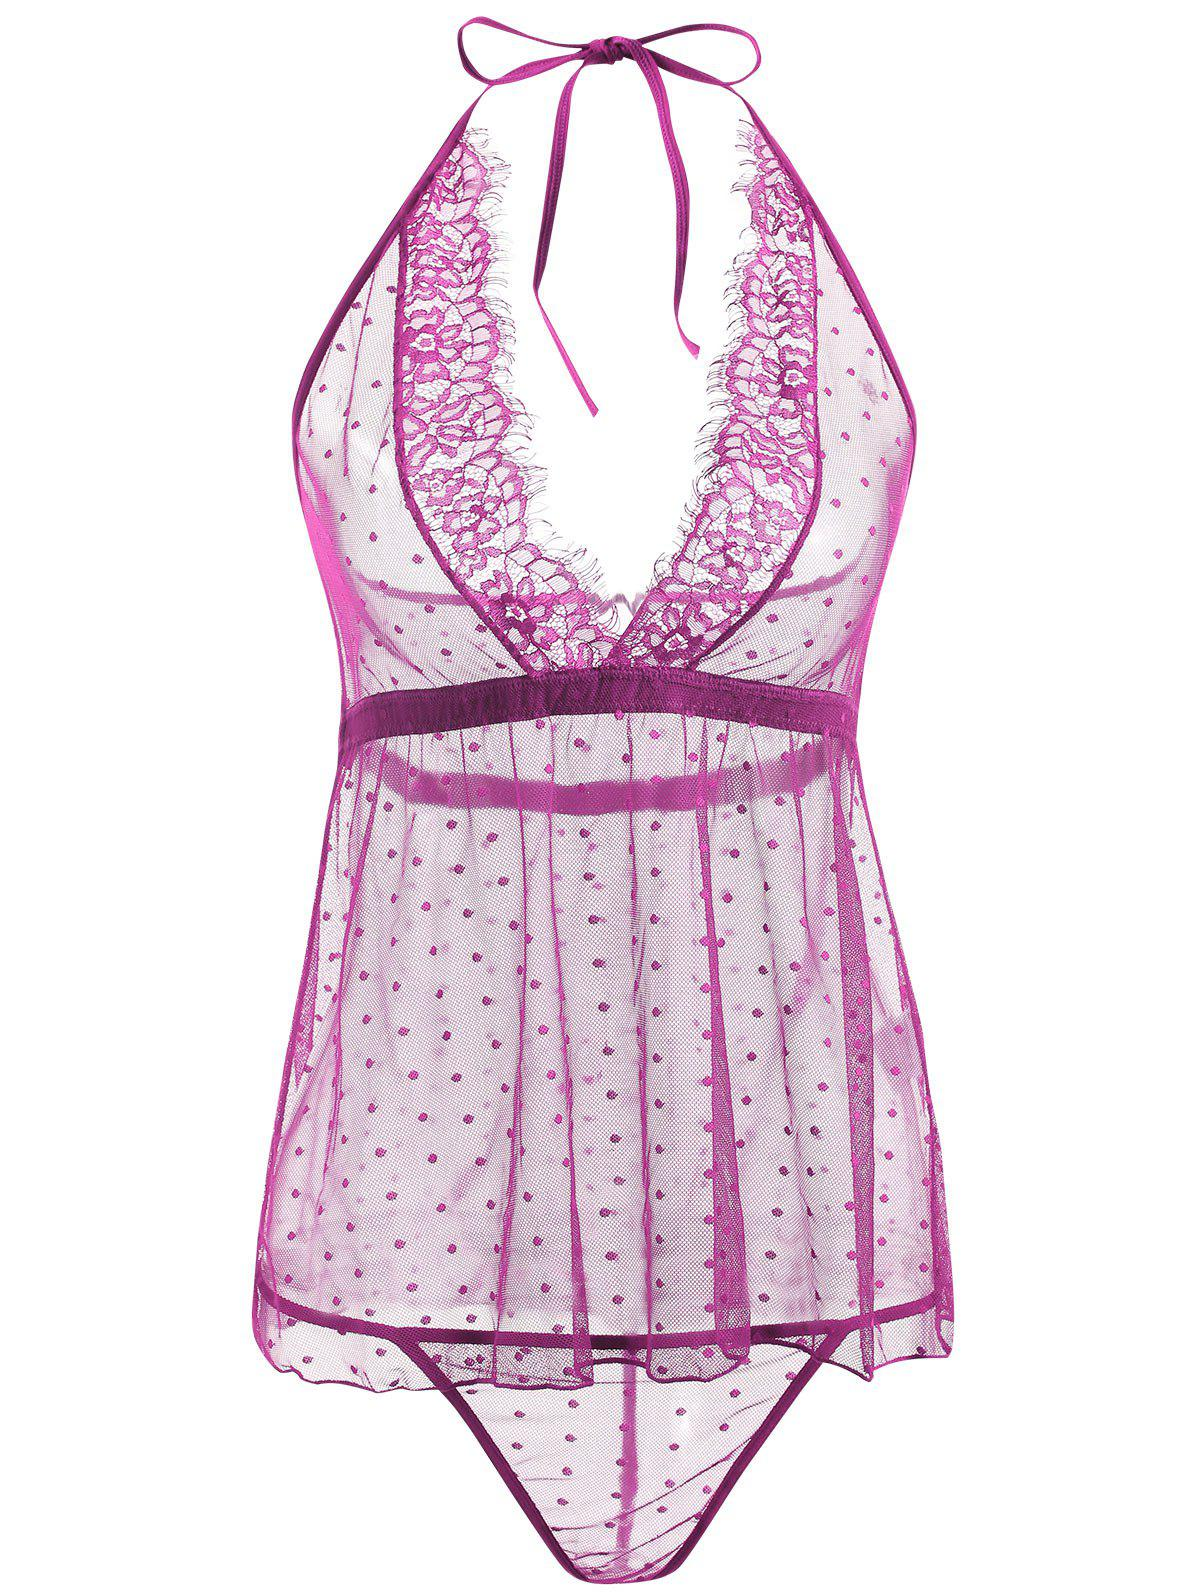 Lace Sheer Low Back Babydoll - PURPLE L